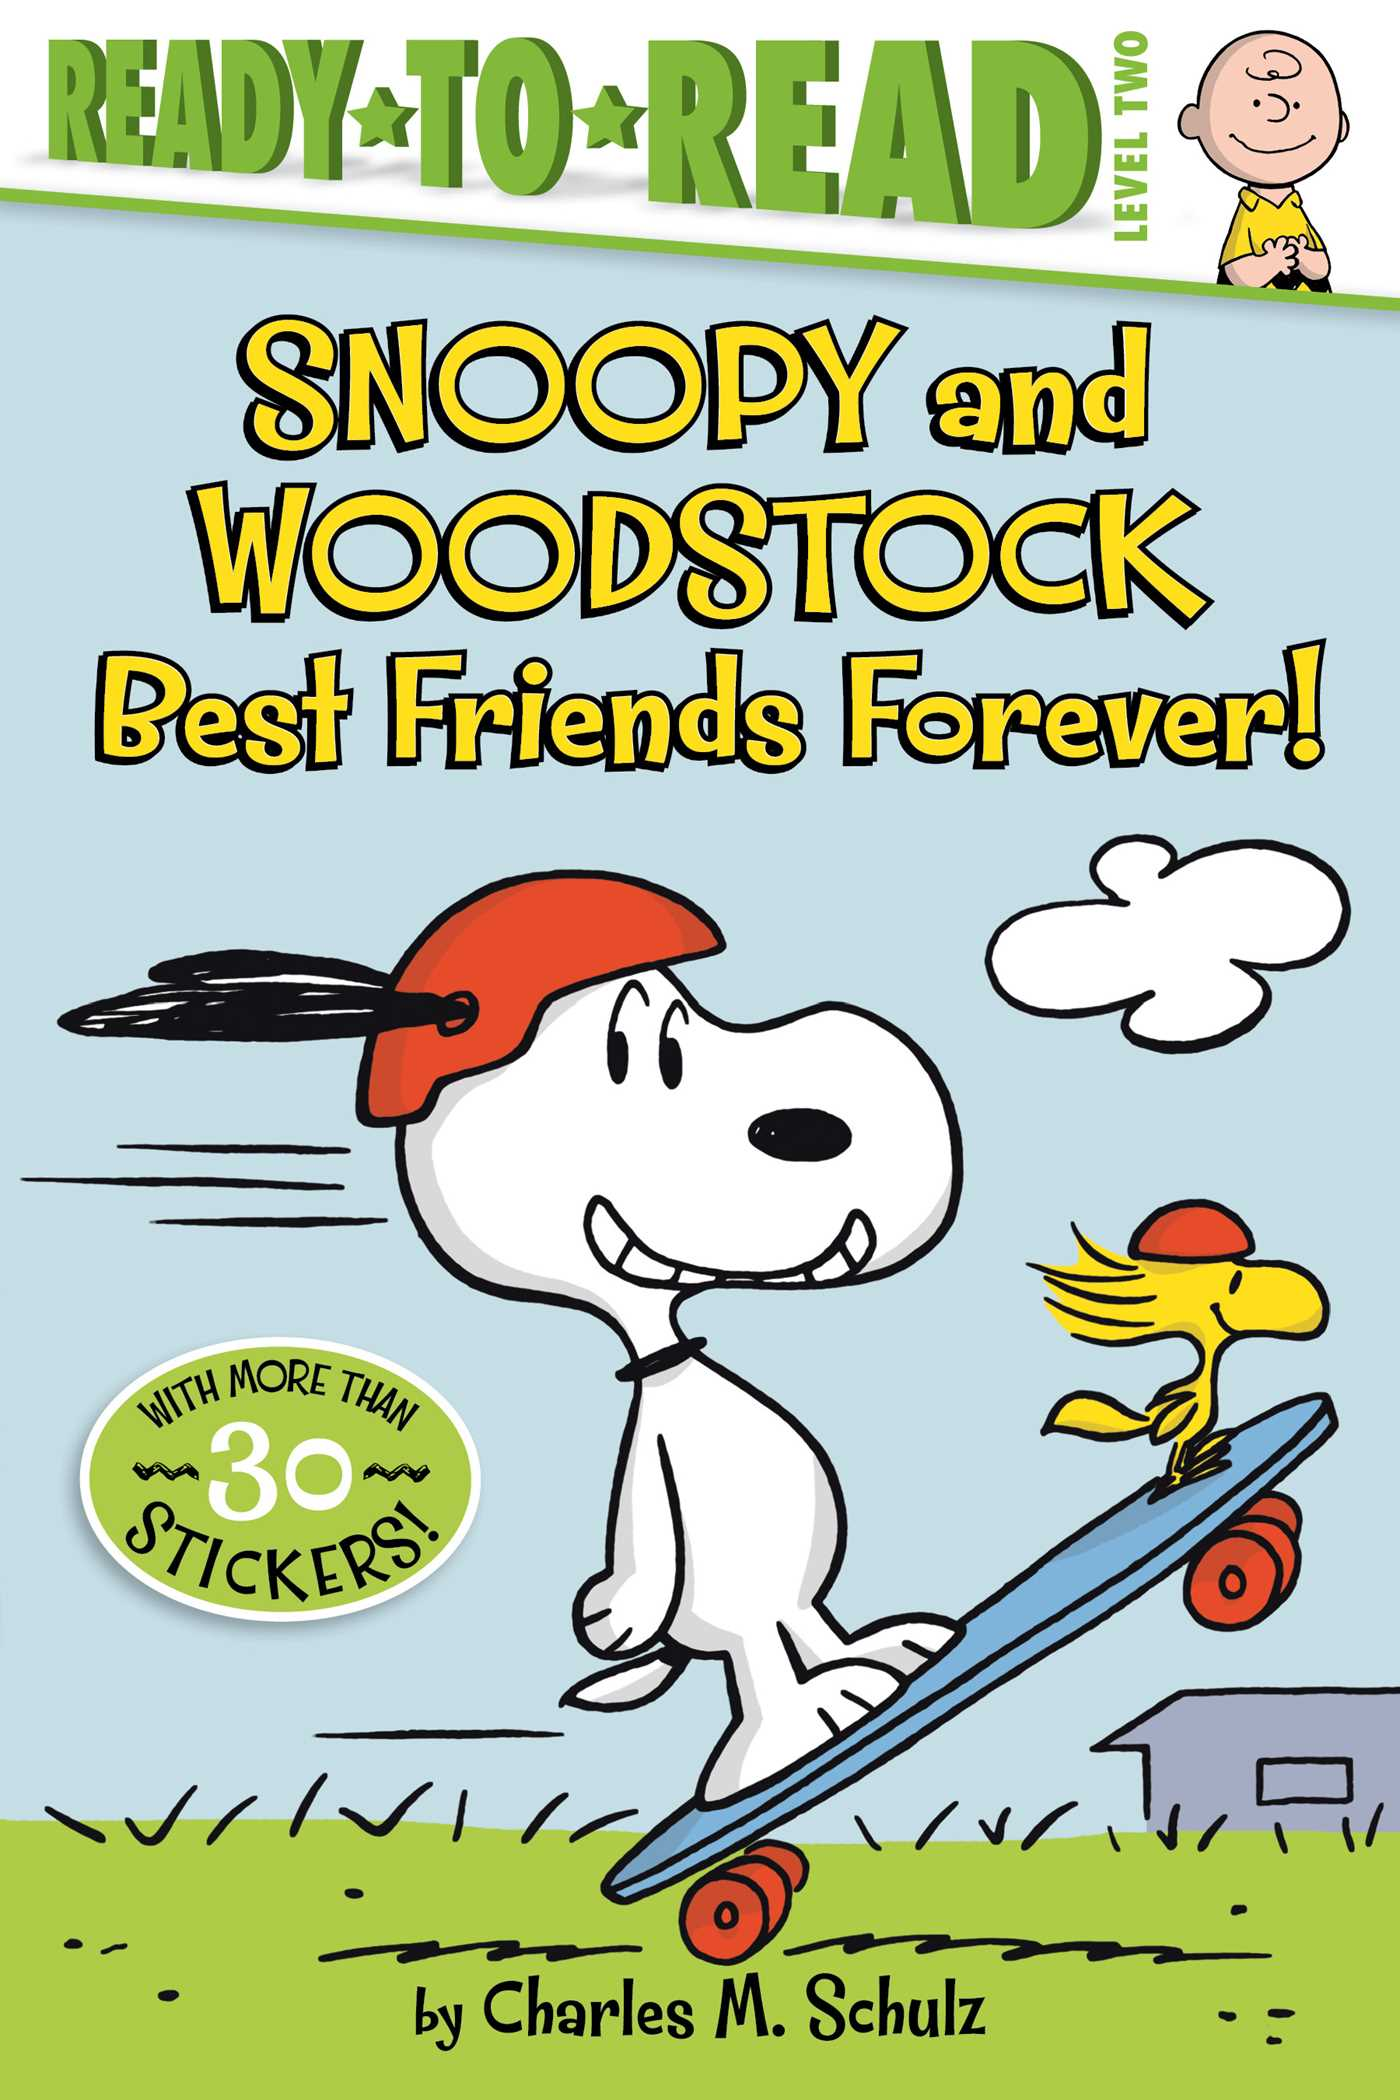 Snoopy and woodstock 9781534409750 hr